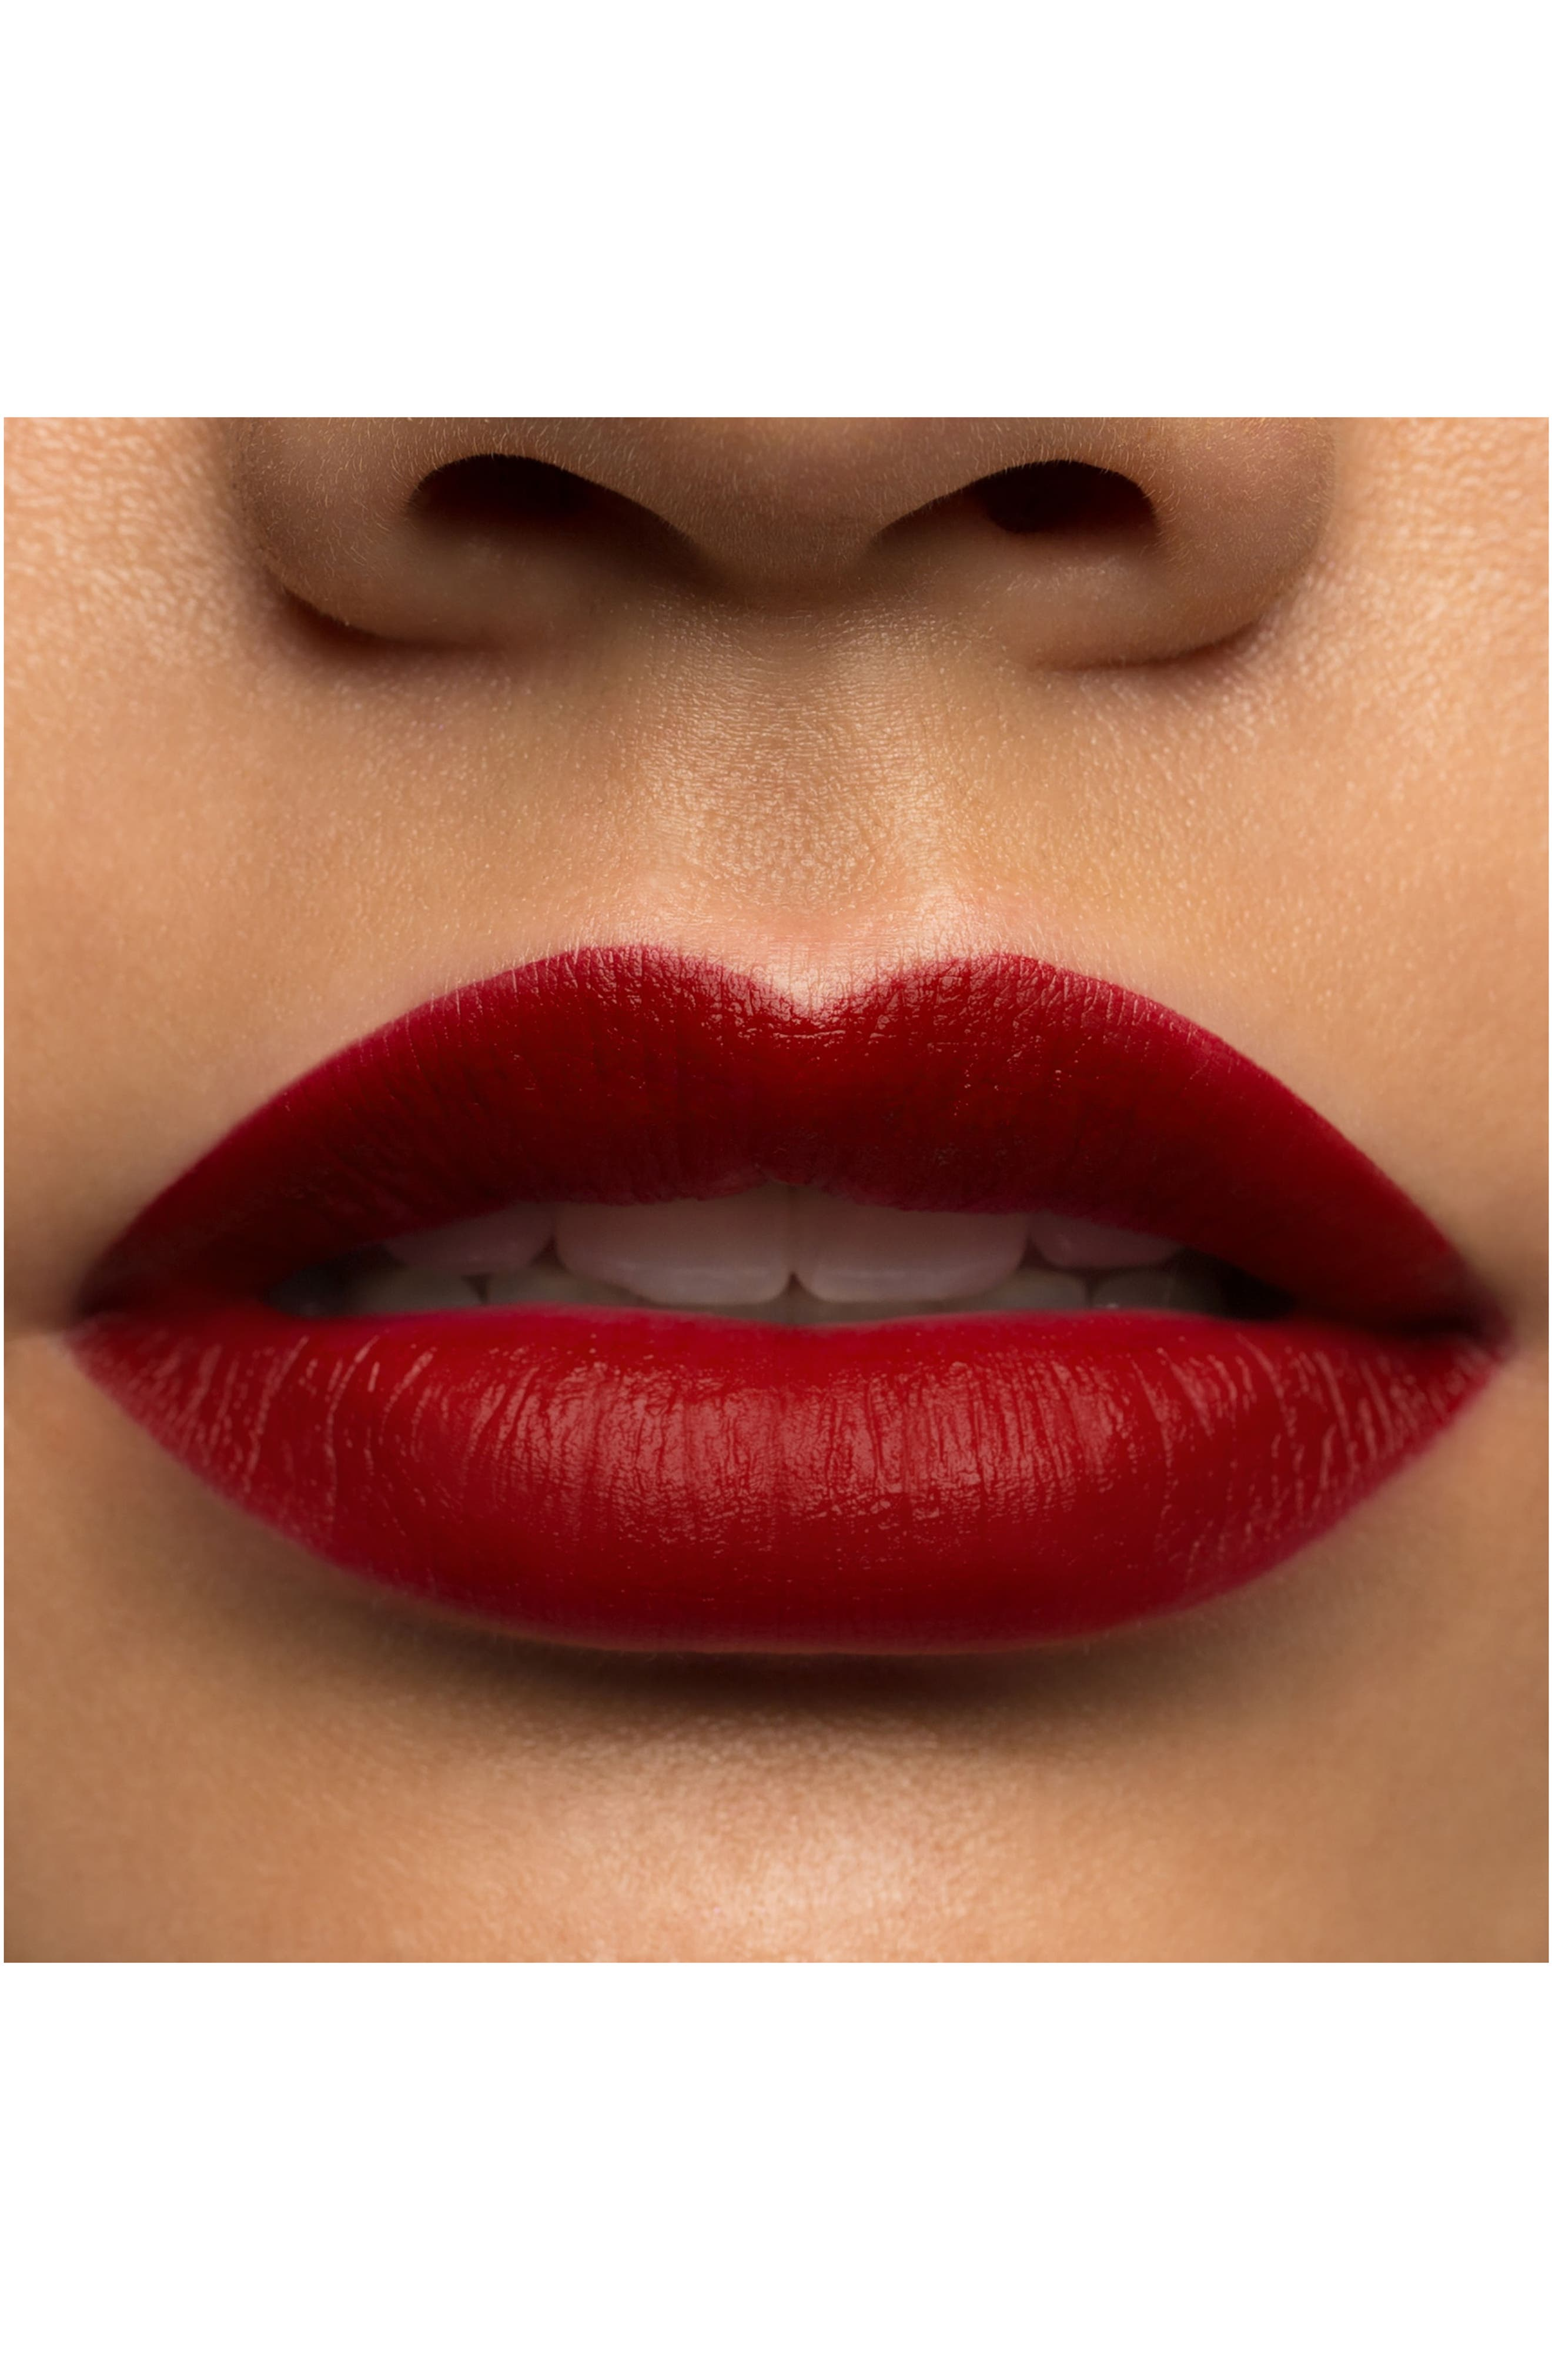 Julep<sup>™</sup> It's Whipped Matte Lip Mousse,                             Alternate thumbnail 2, color,                             AT MIDNIGHT